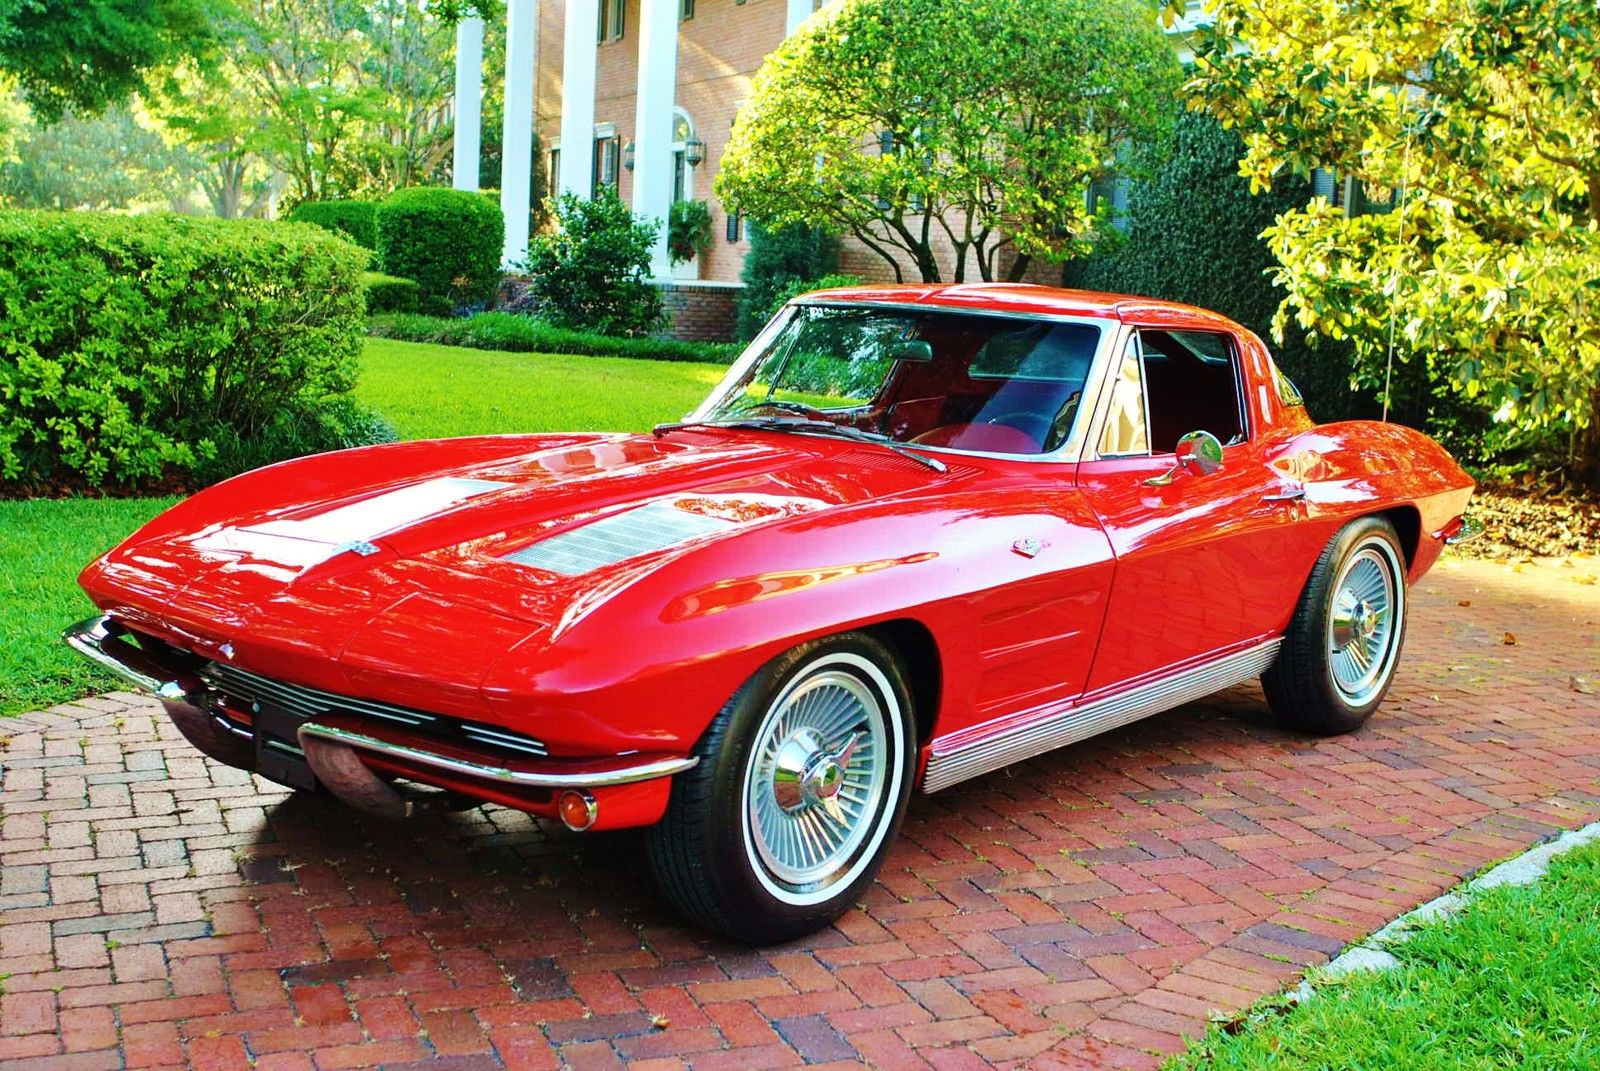 1963 chevrolet corvette split window 327 v8 muscle car